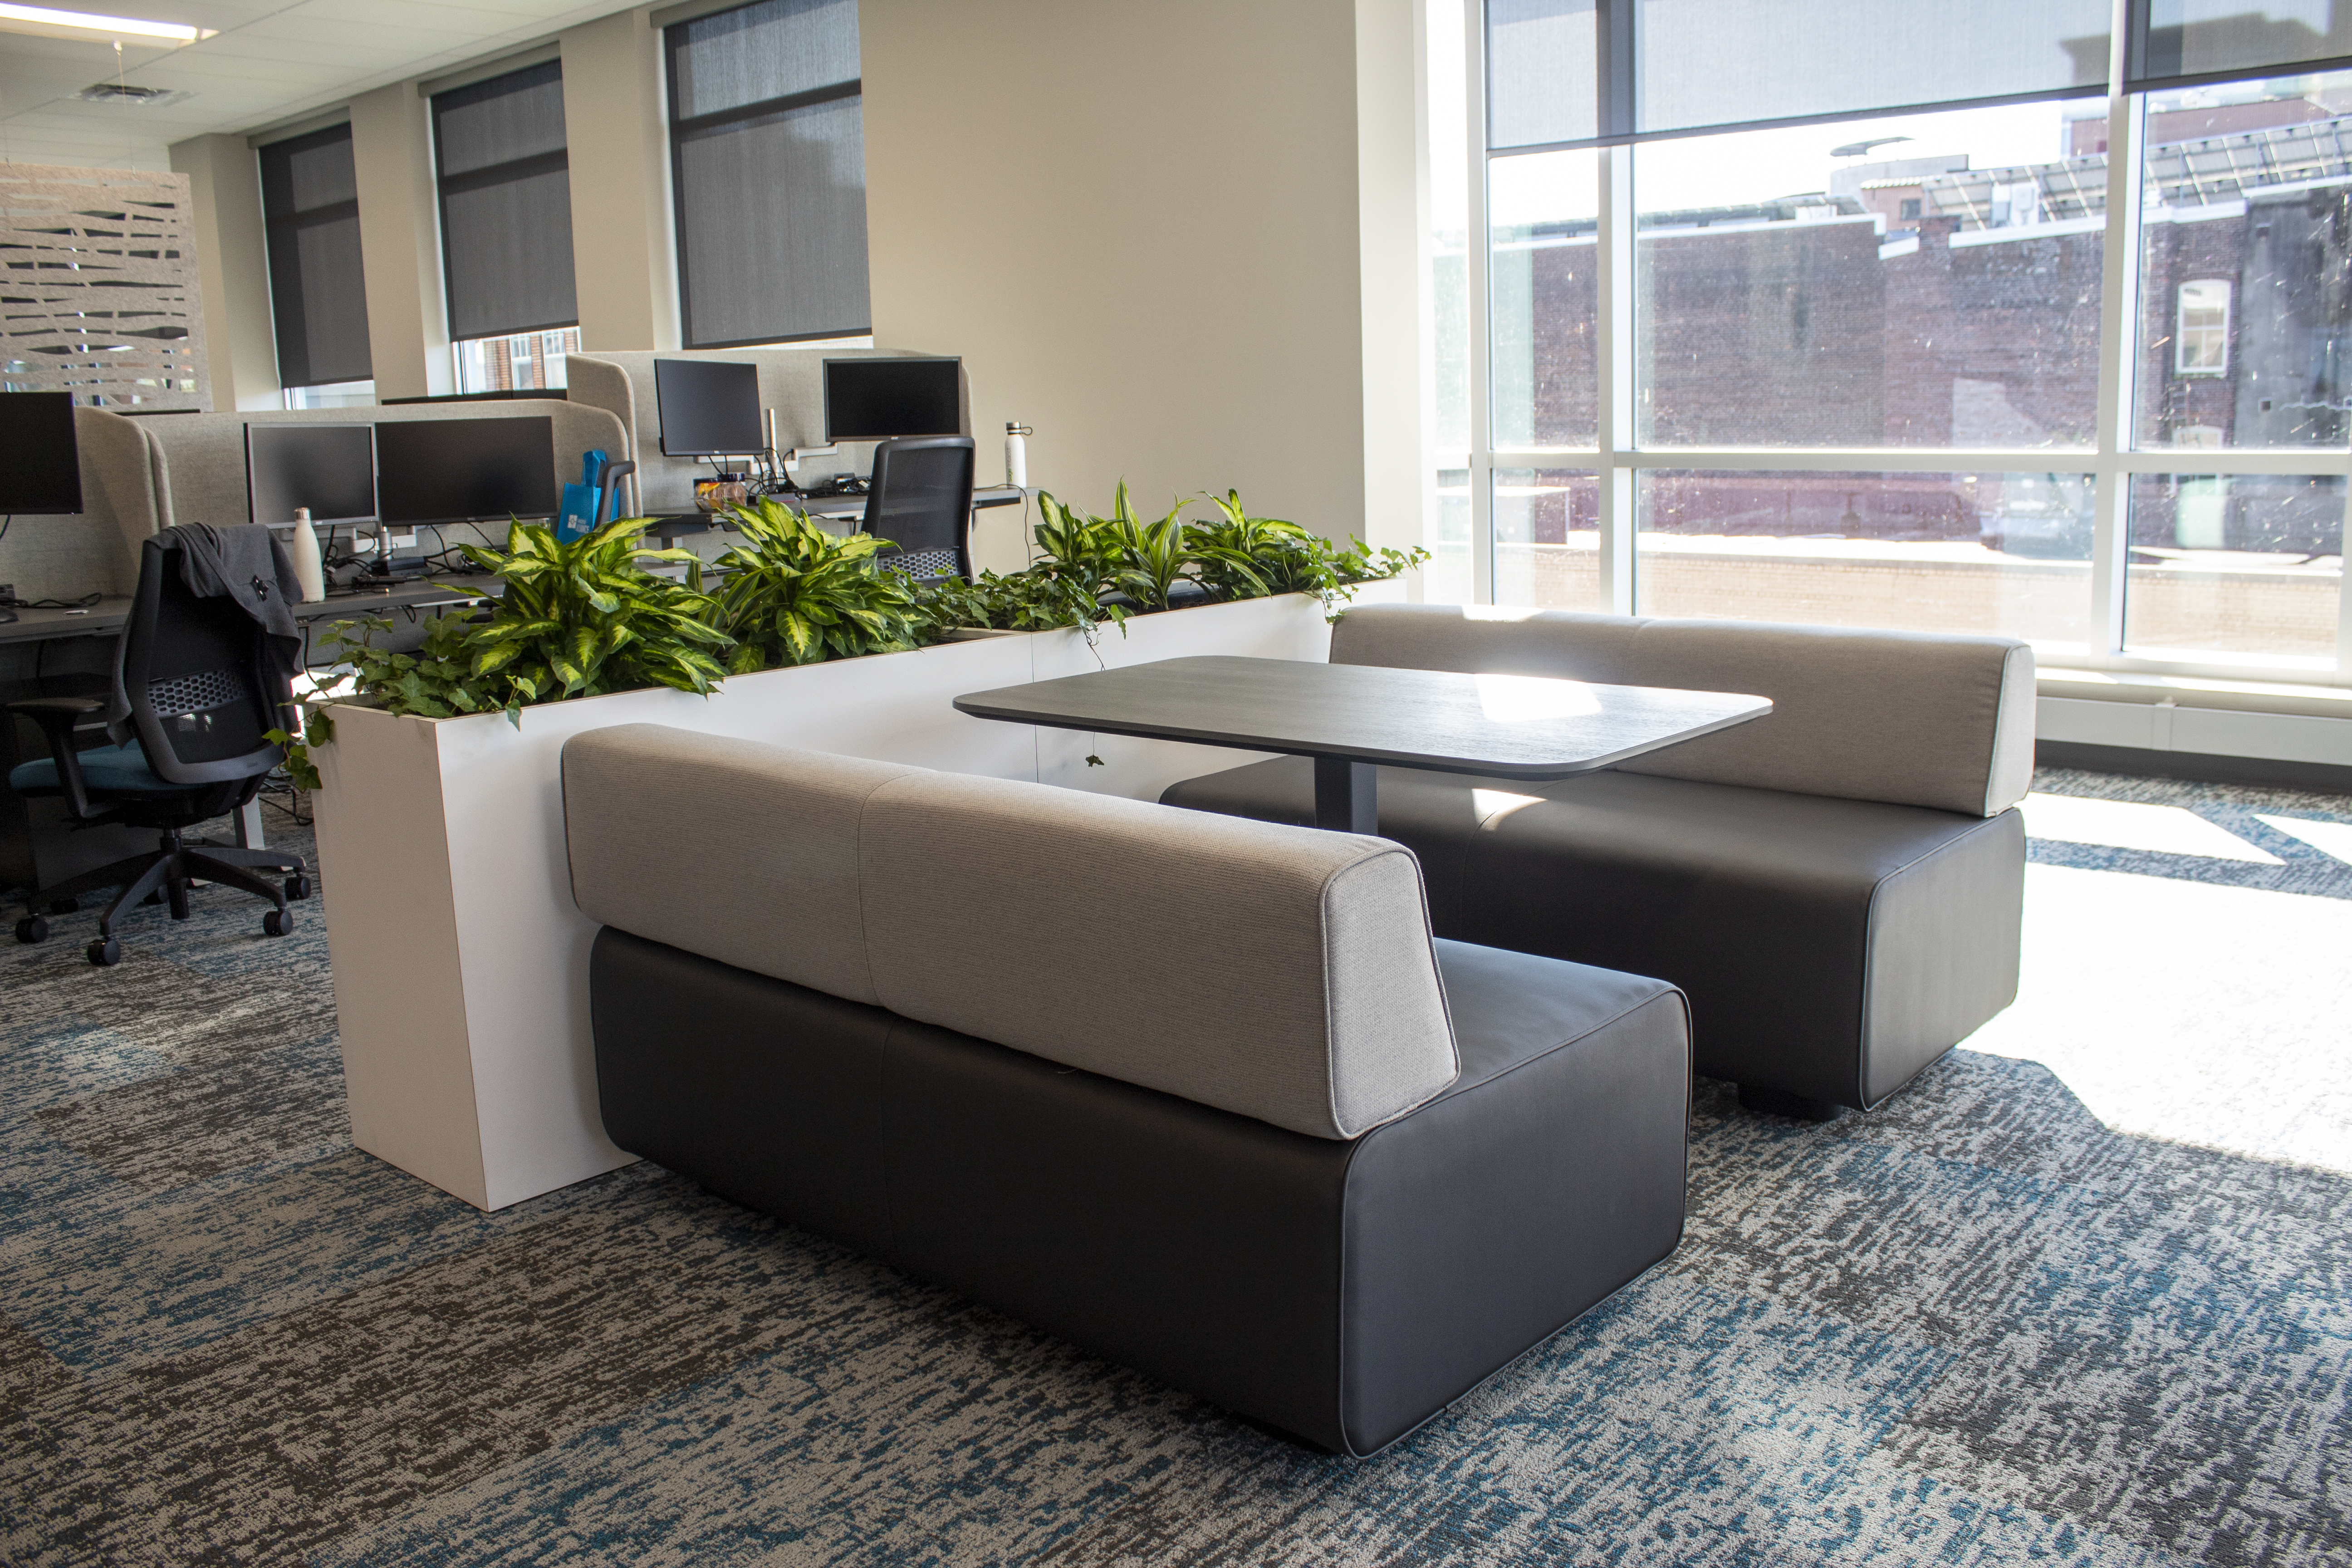 soft seating table and planters at cargas systems